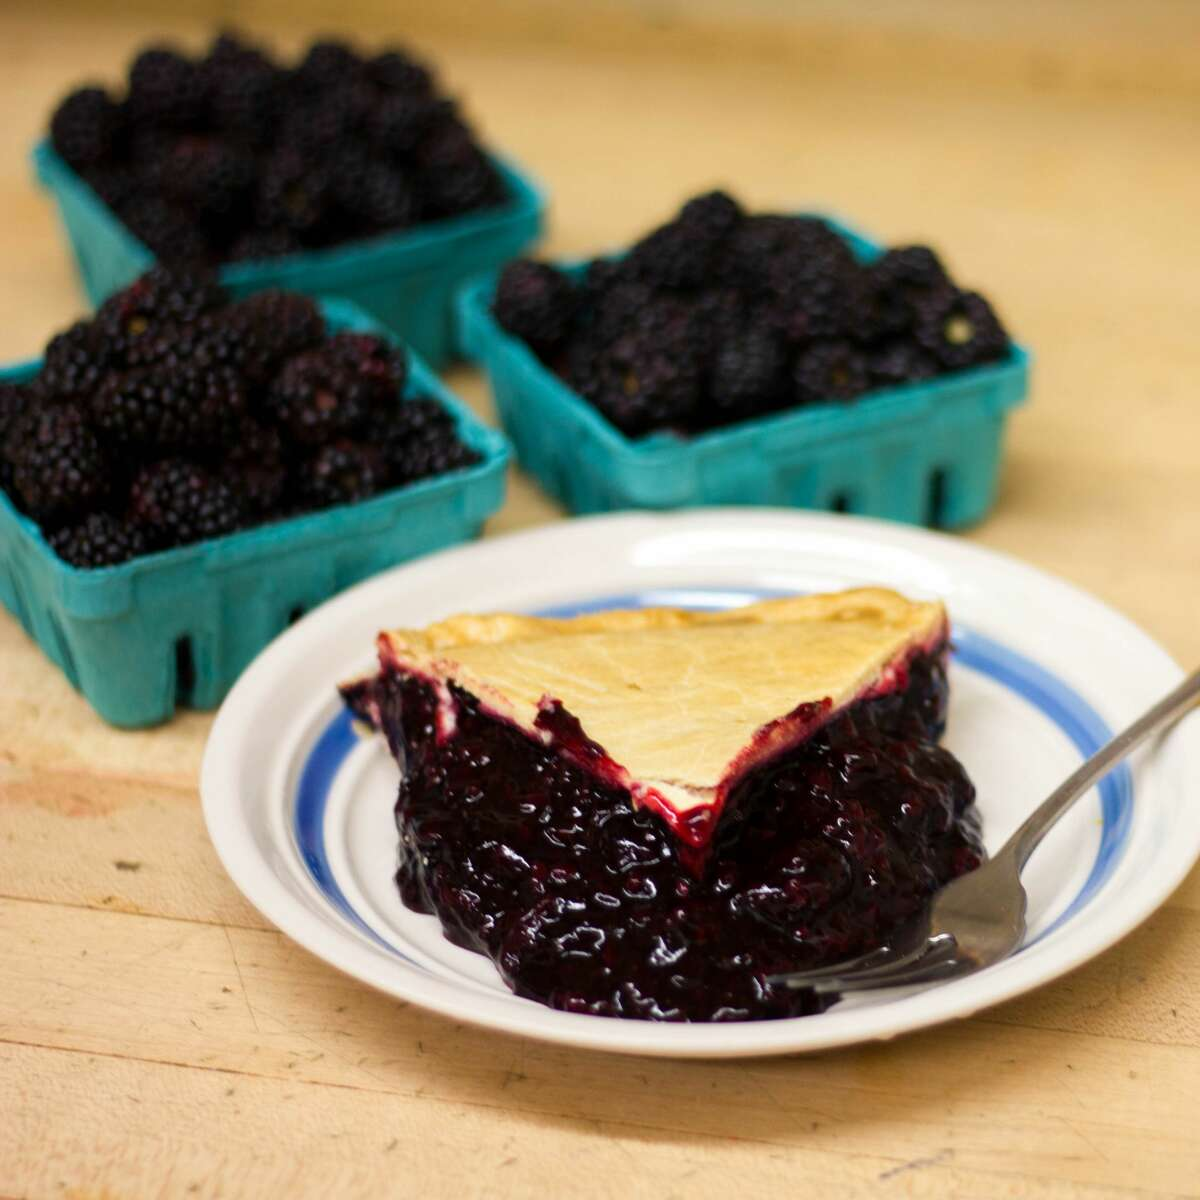 The marionberry pie is one of Ikeda's favorites.